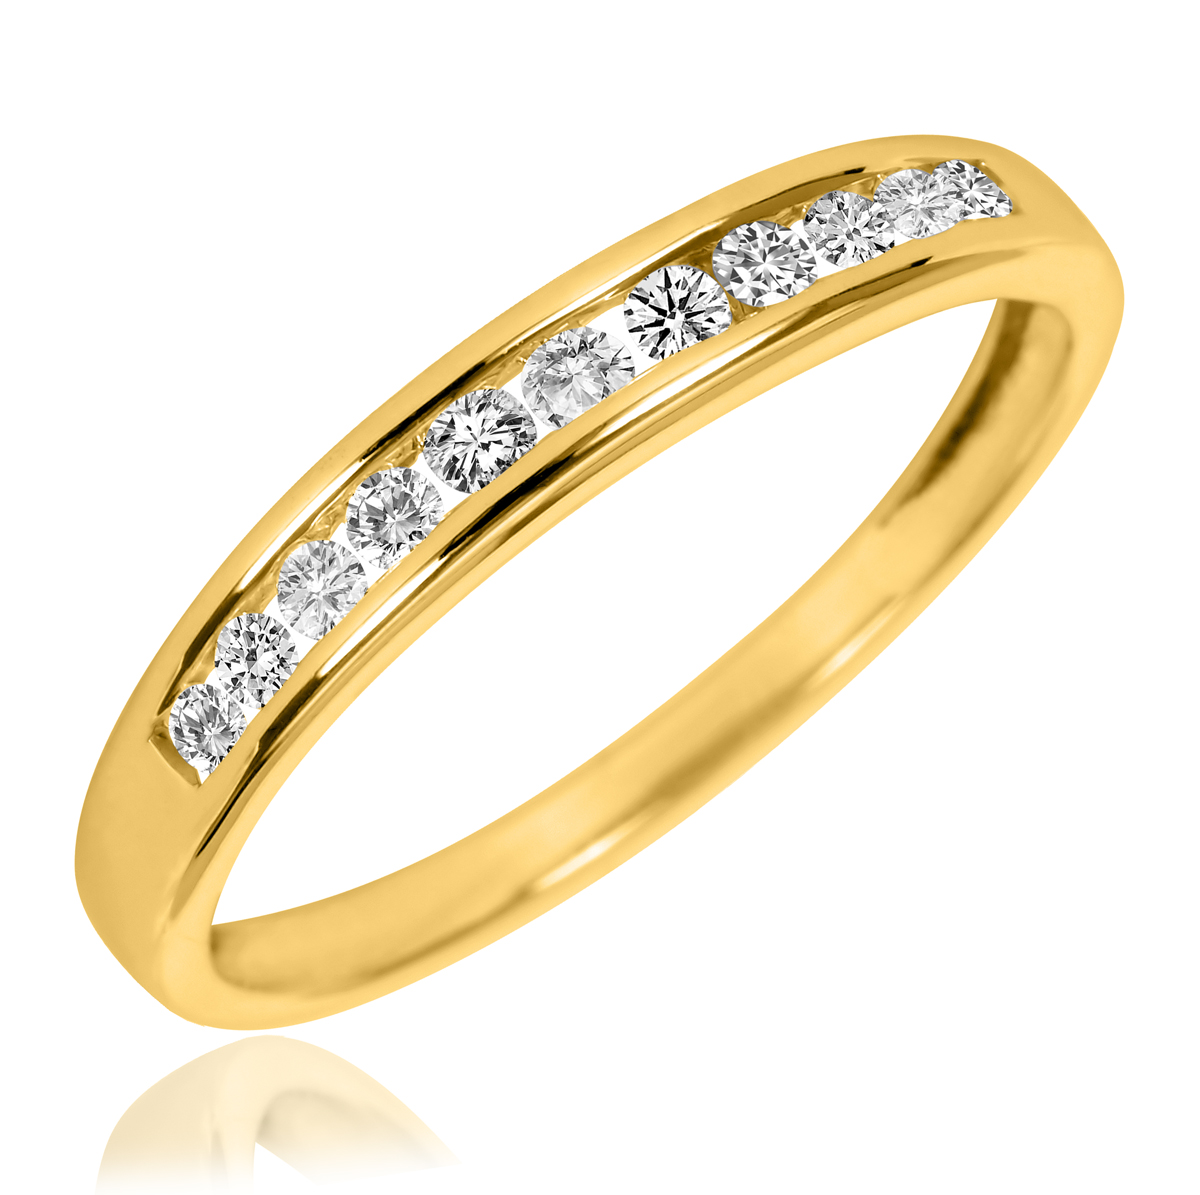 1 CT TW Diamond Womens Bridal Wedding Ring Set 14K Yellow Gold